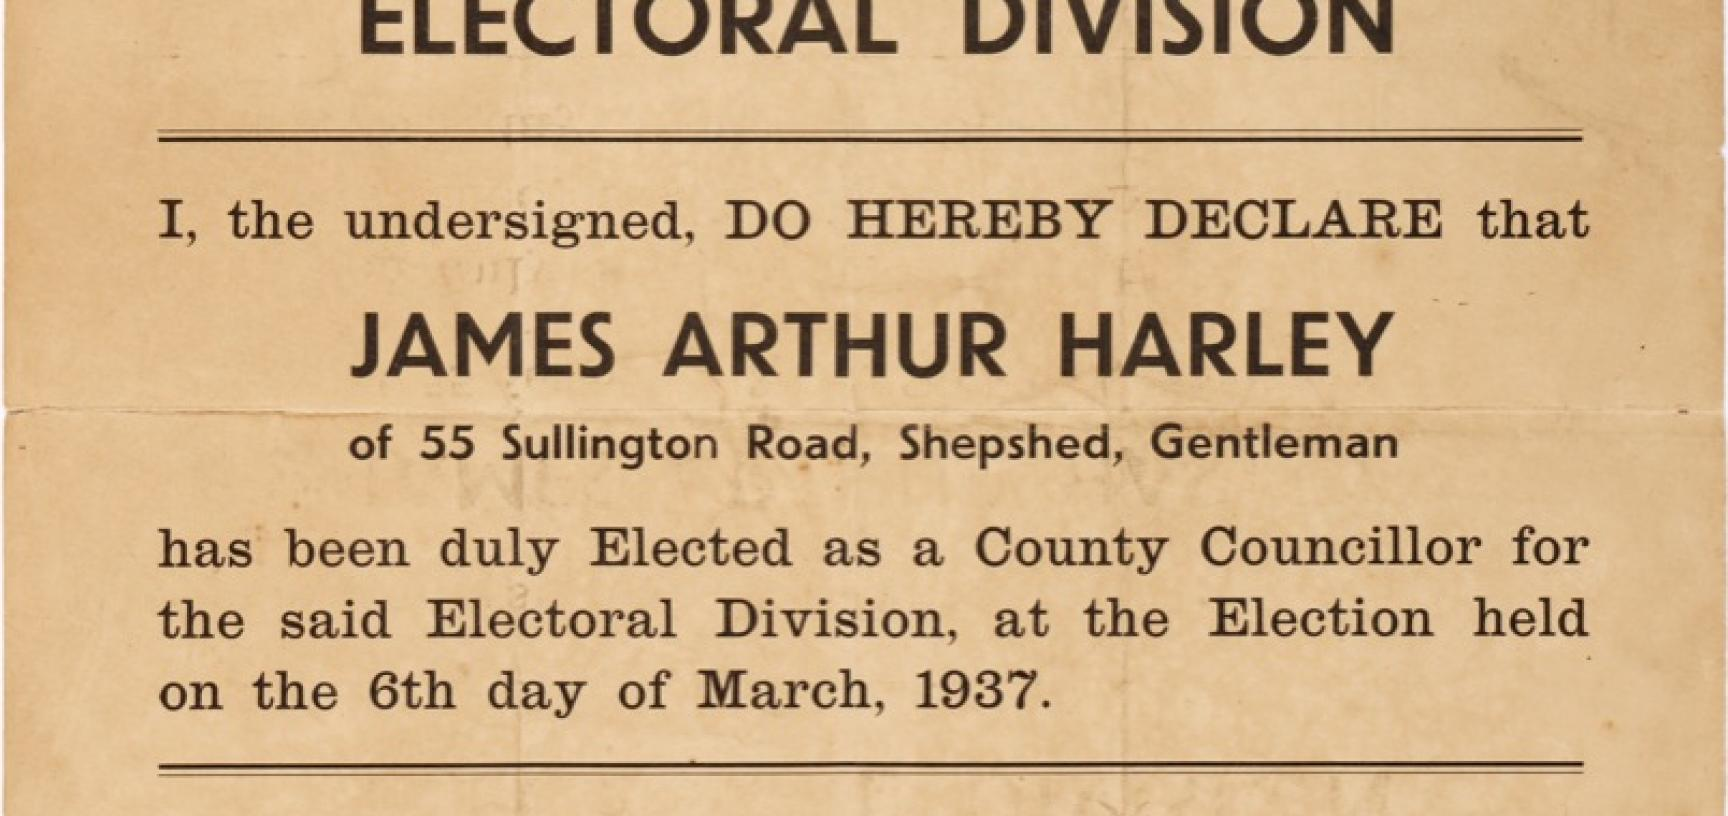 Poster of voting results following Harley's election to Leicestershire County Council, 6 March 1937. (Courtesy Michael Wortley)